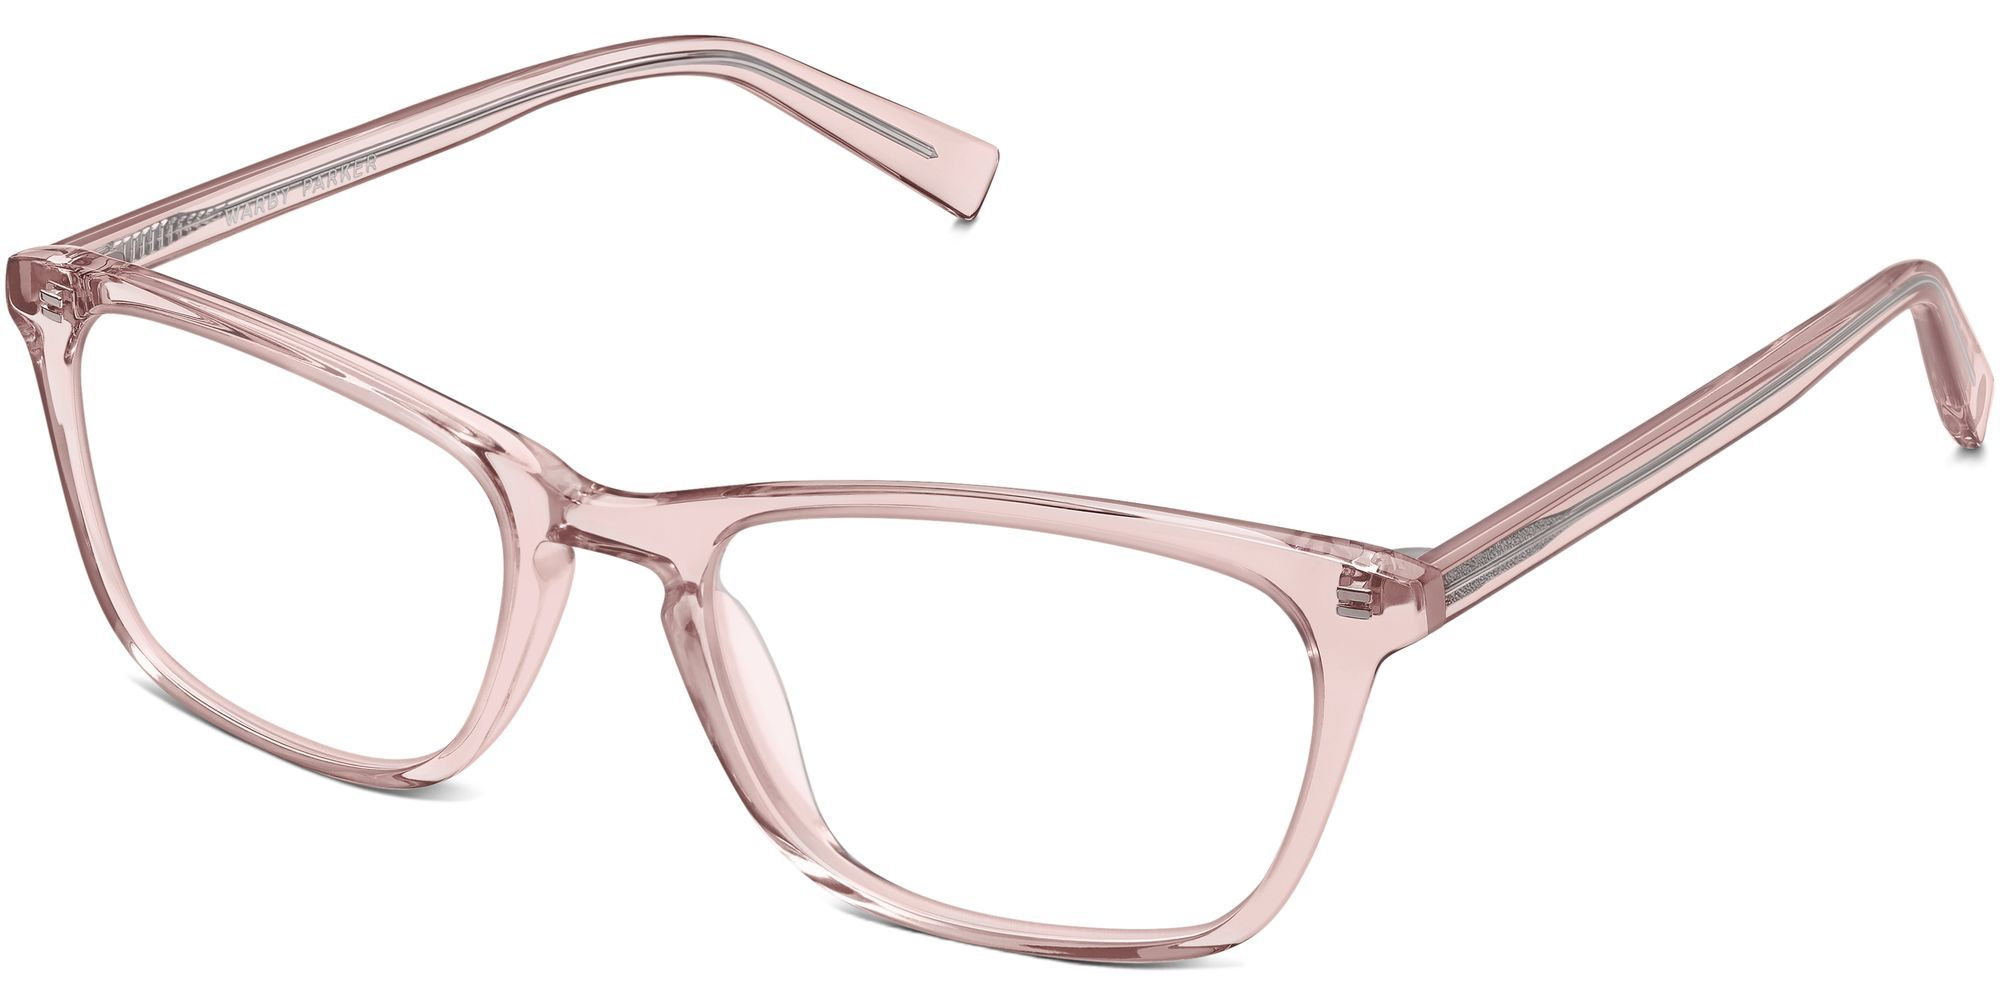 36a64f948a Warby Parker Eyeglasses in Rose Crystal for Women. Welty s keyhole bridge